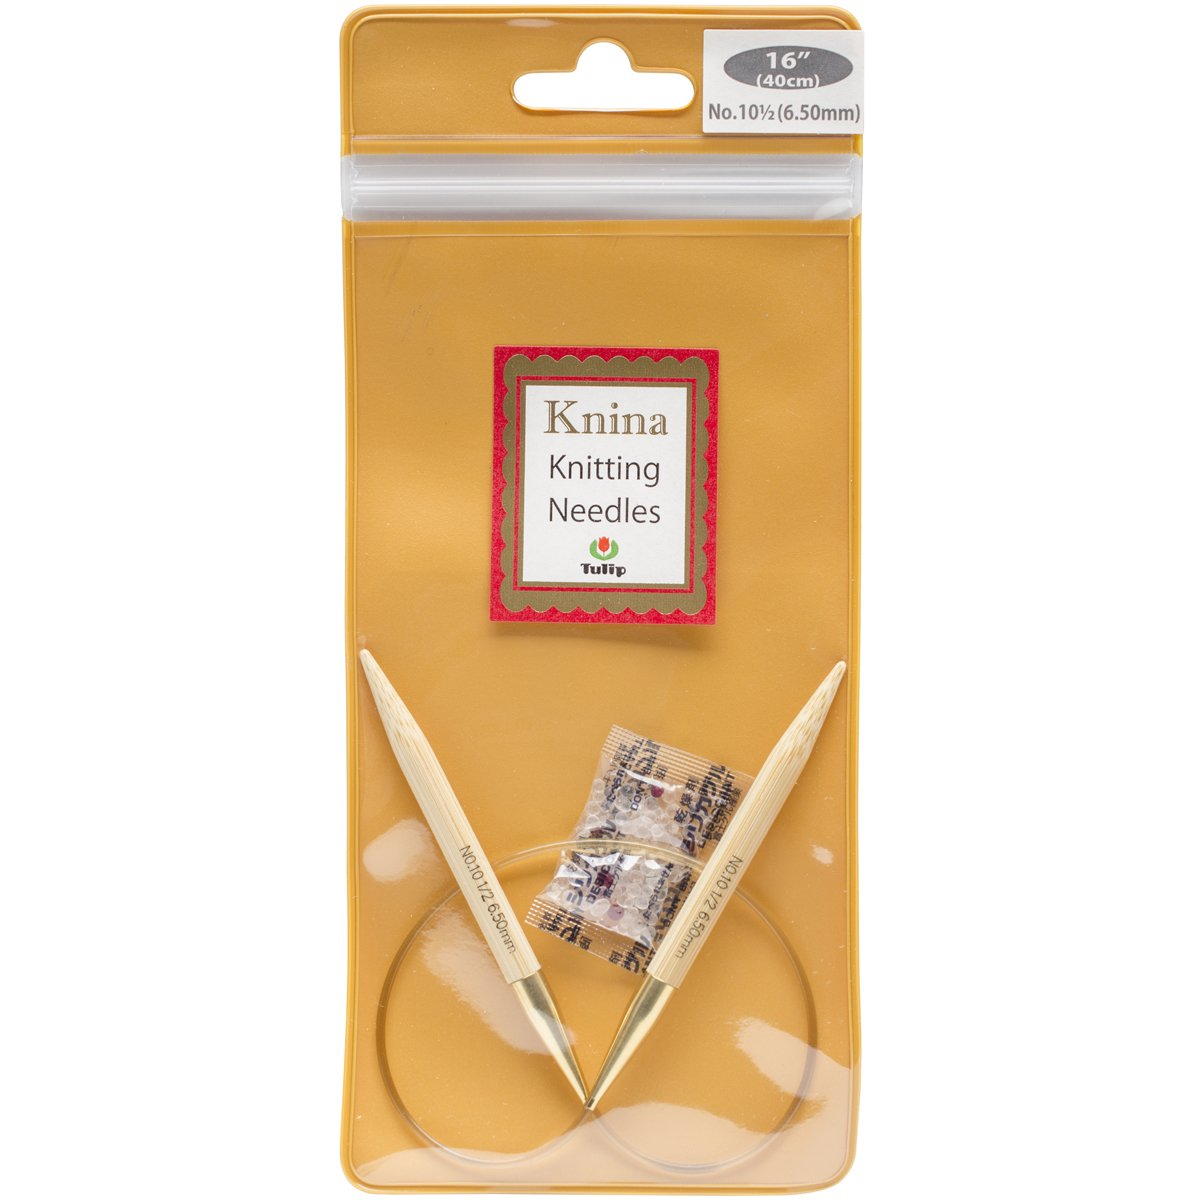 Tulip Needle Company 16 Knina Knitting Needles, 10.5/6.5mm by Tulip Needle Company B00USPNX60